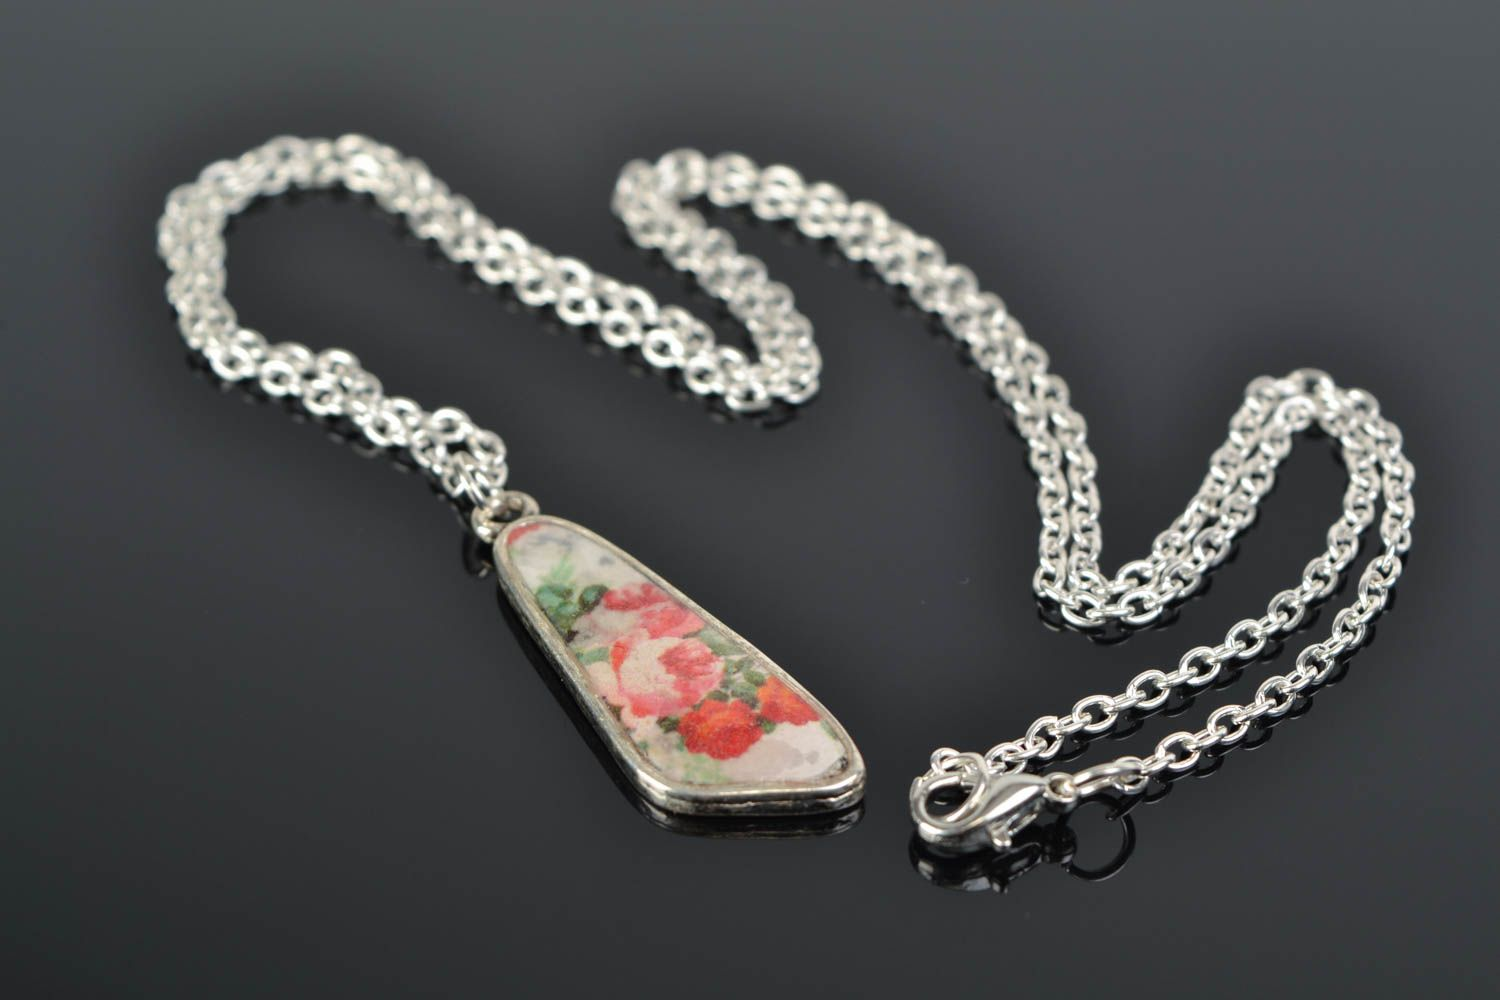 Handmade epoxy resin neck pendant with decoupage flowers for women photo 1